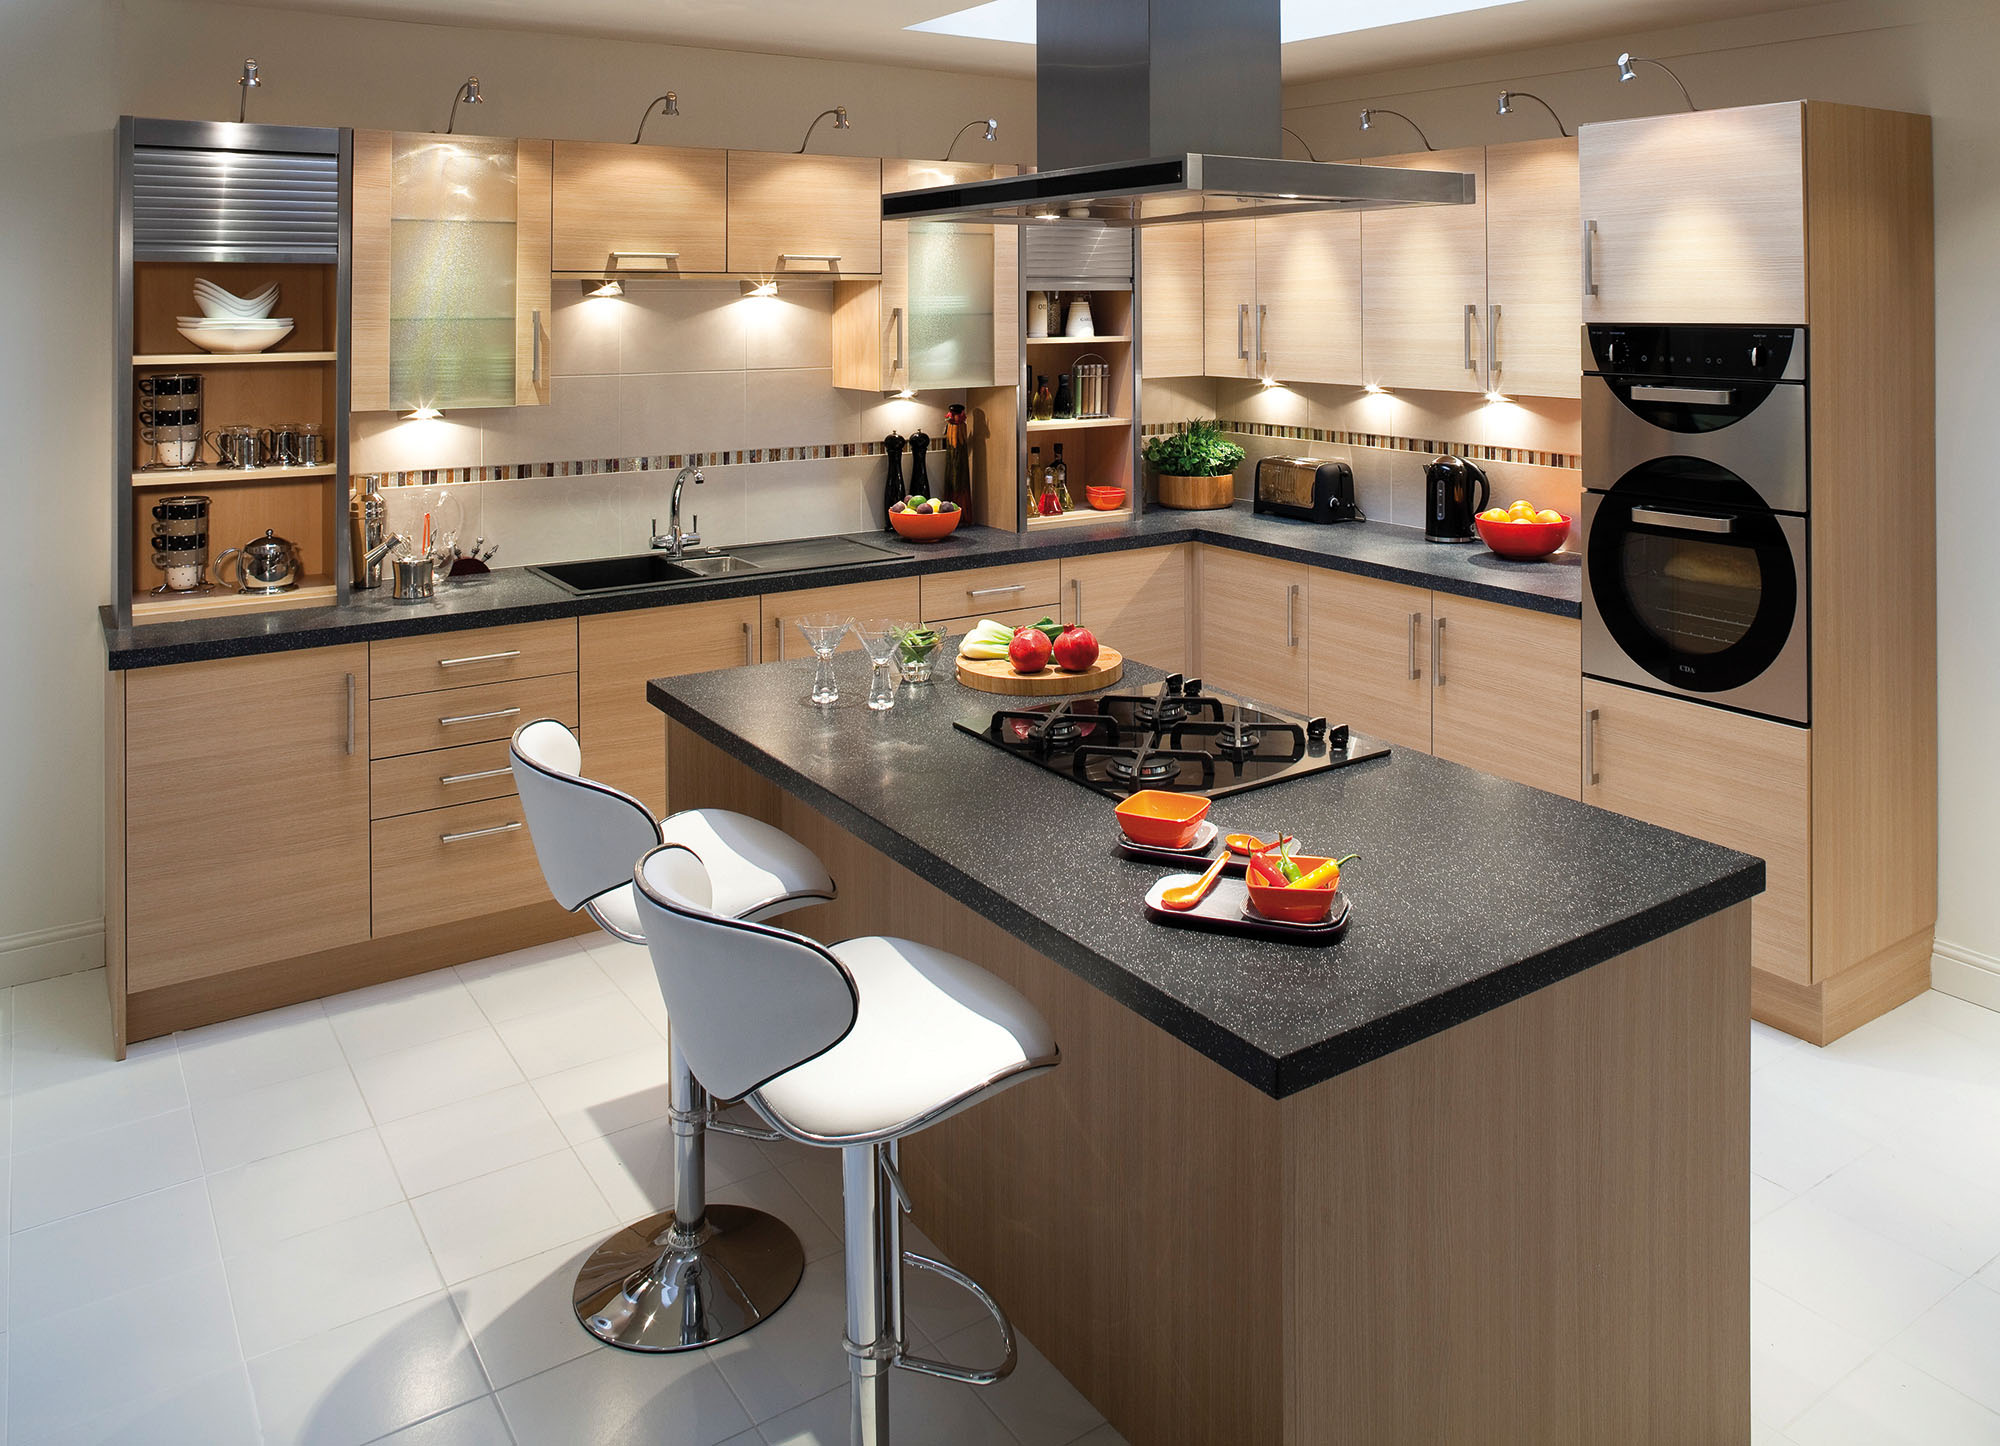 Contemporary Small Kitchen Design Ideas with Wooden Cabinetry and Kitchen Island with Seating